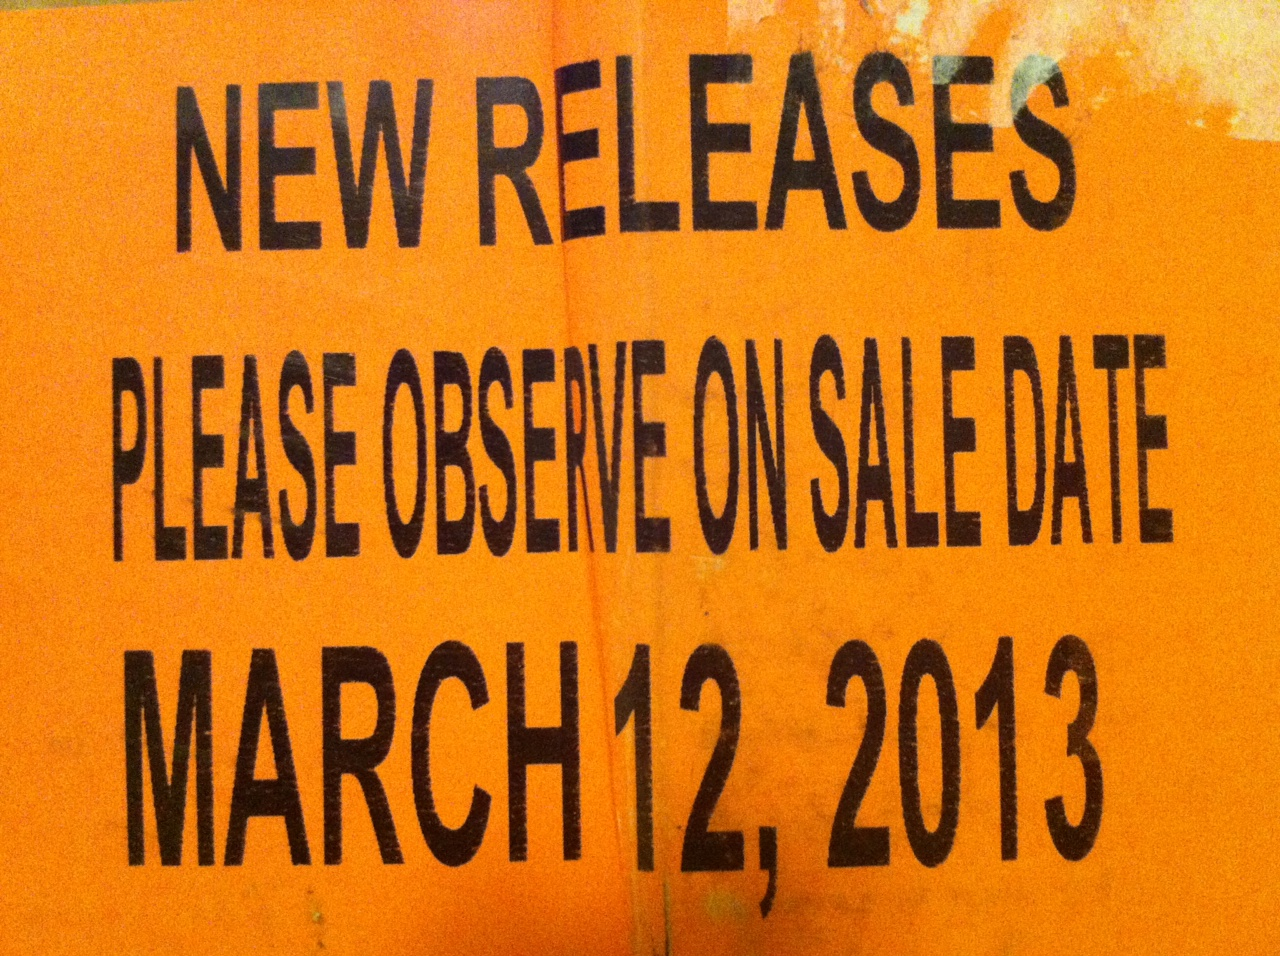 On sale date March 12, 2013